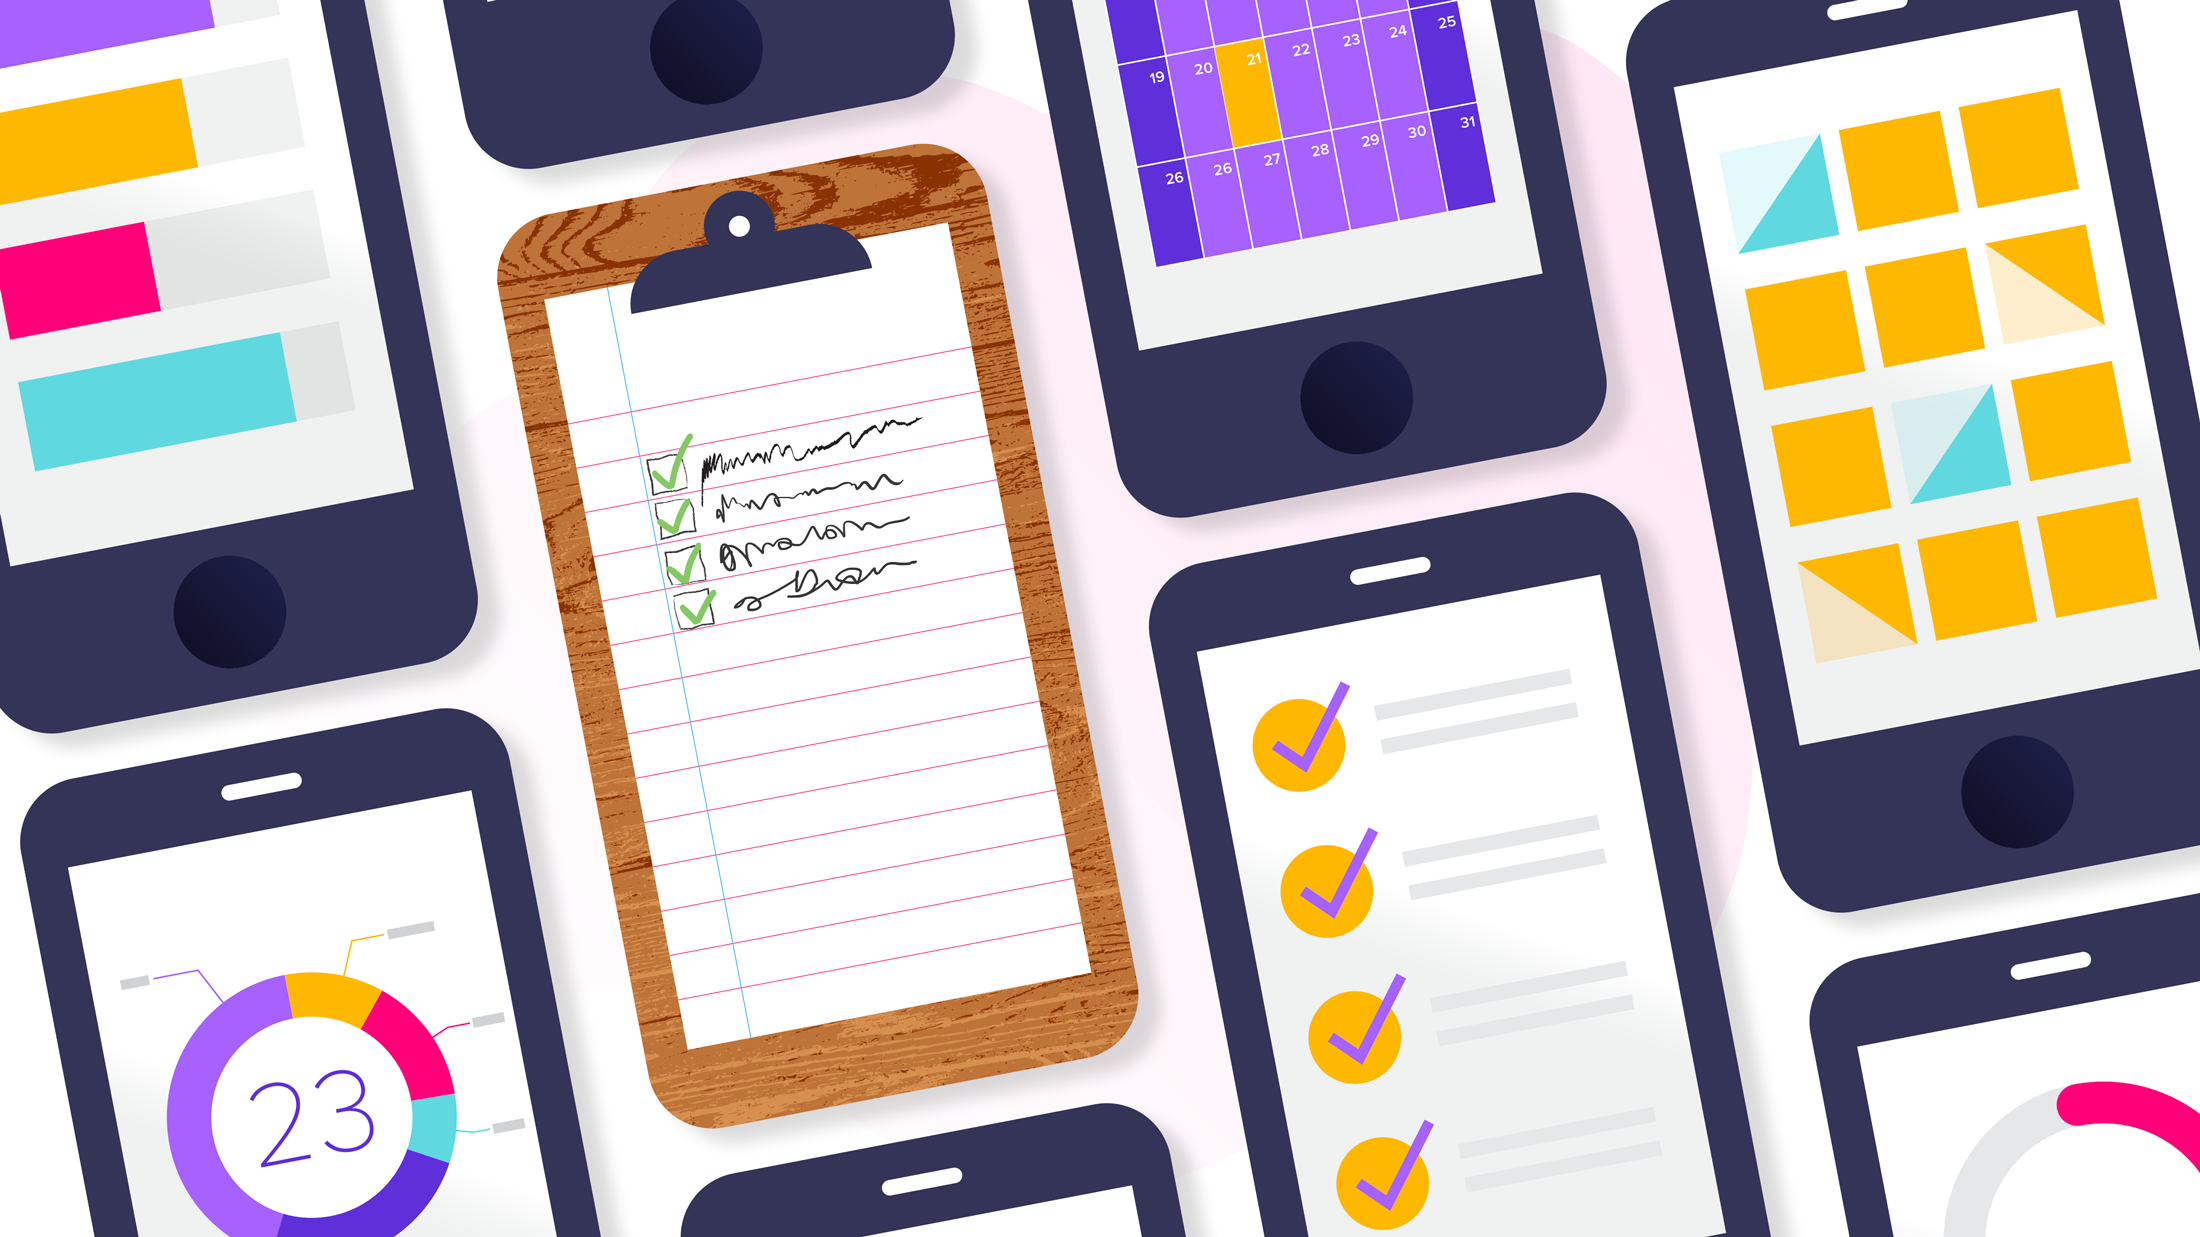 A drawing depicting a clipboard with a to-do list surrounded by smartphone screens showing to-do list apps.